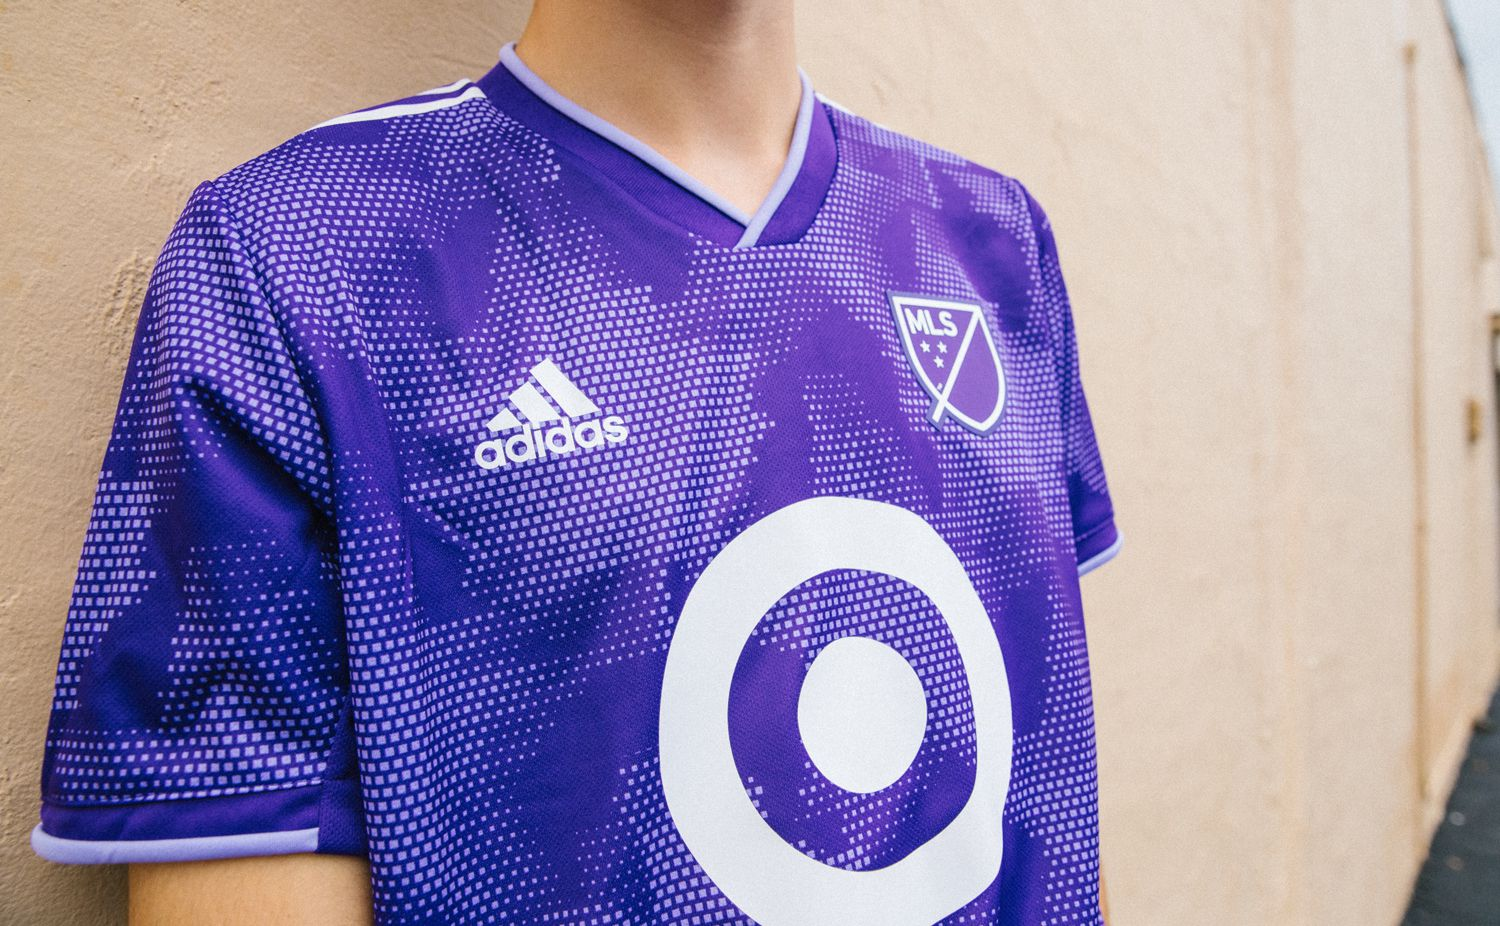 The 2019 MLS All-Star Game Jersey.